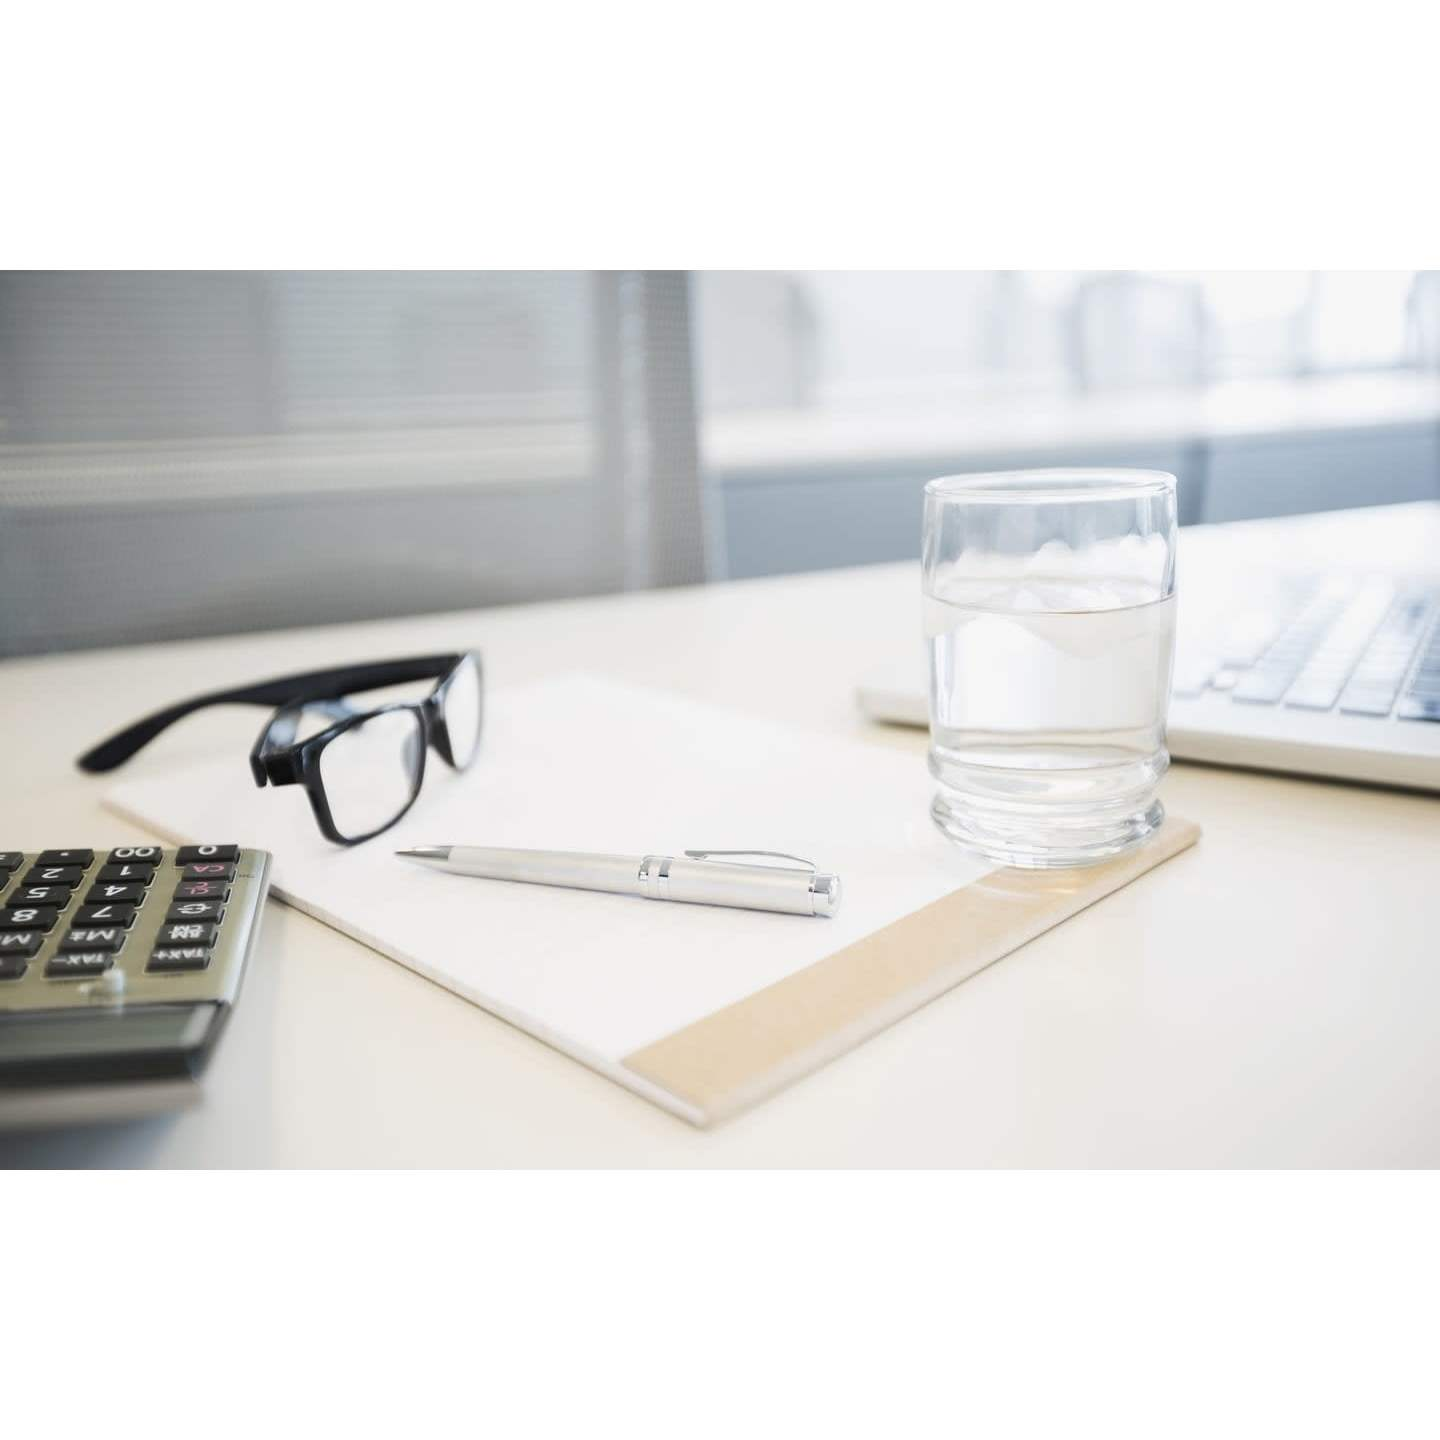 J. Jervis Accounting Services - Wrexham, Clwyd LL14 5BN - 01691 774431 | ShowMeLocal.com